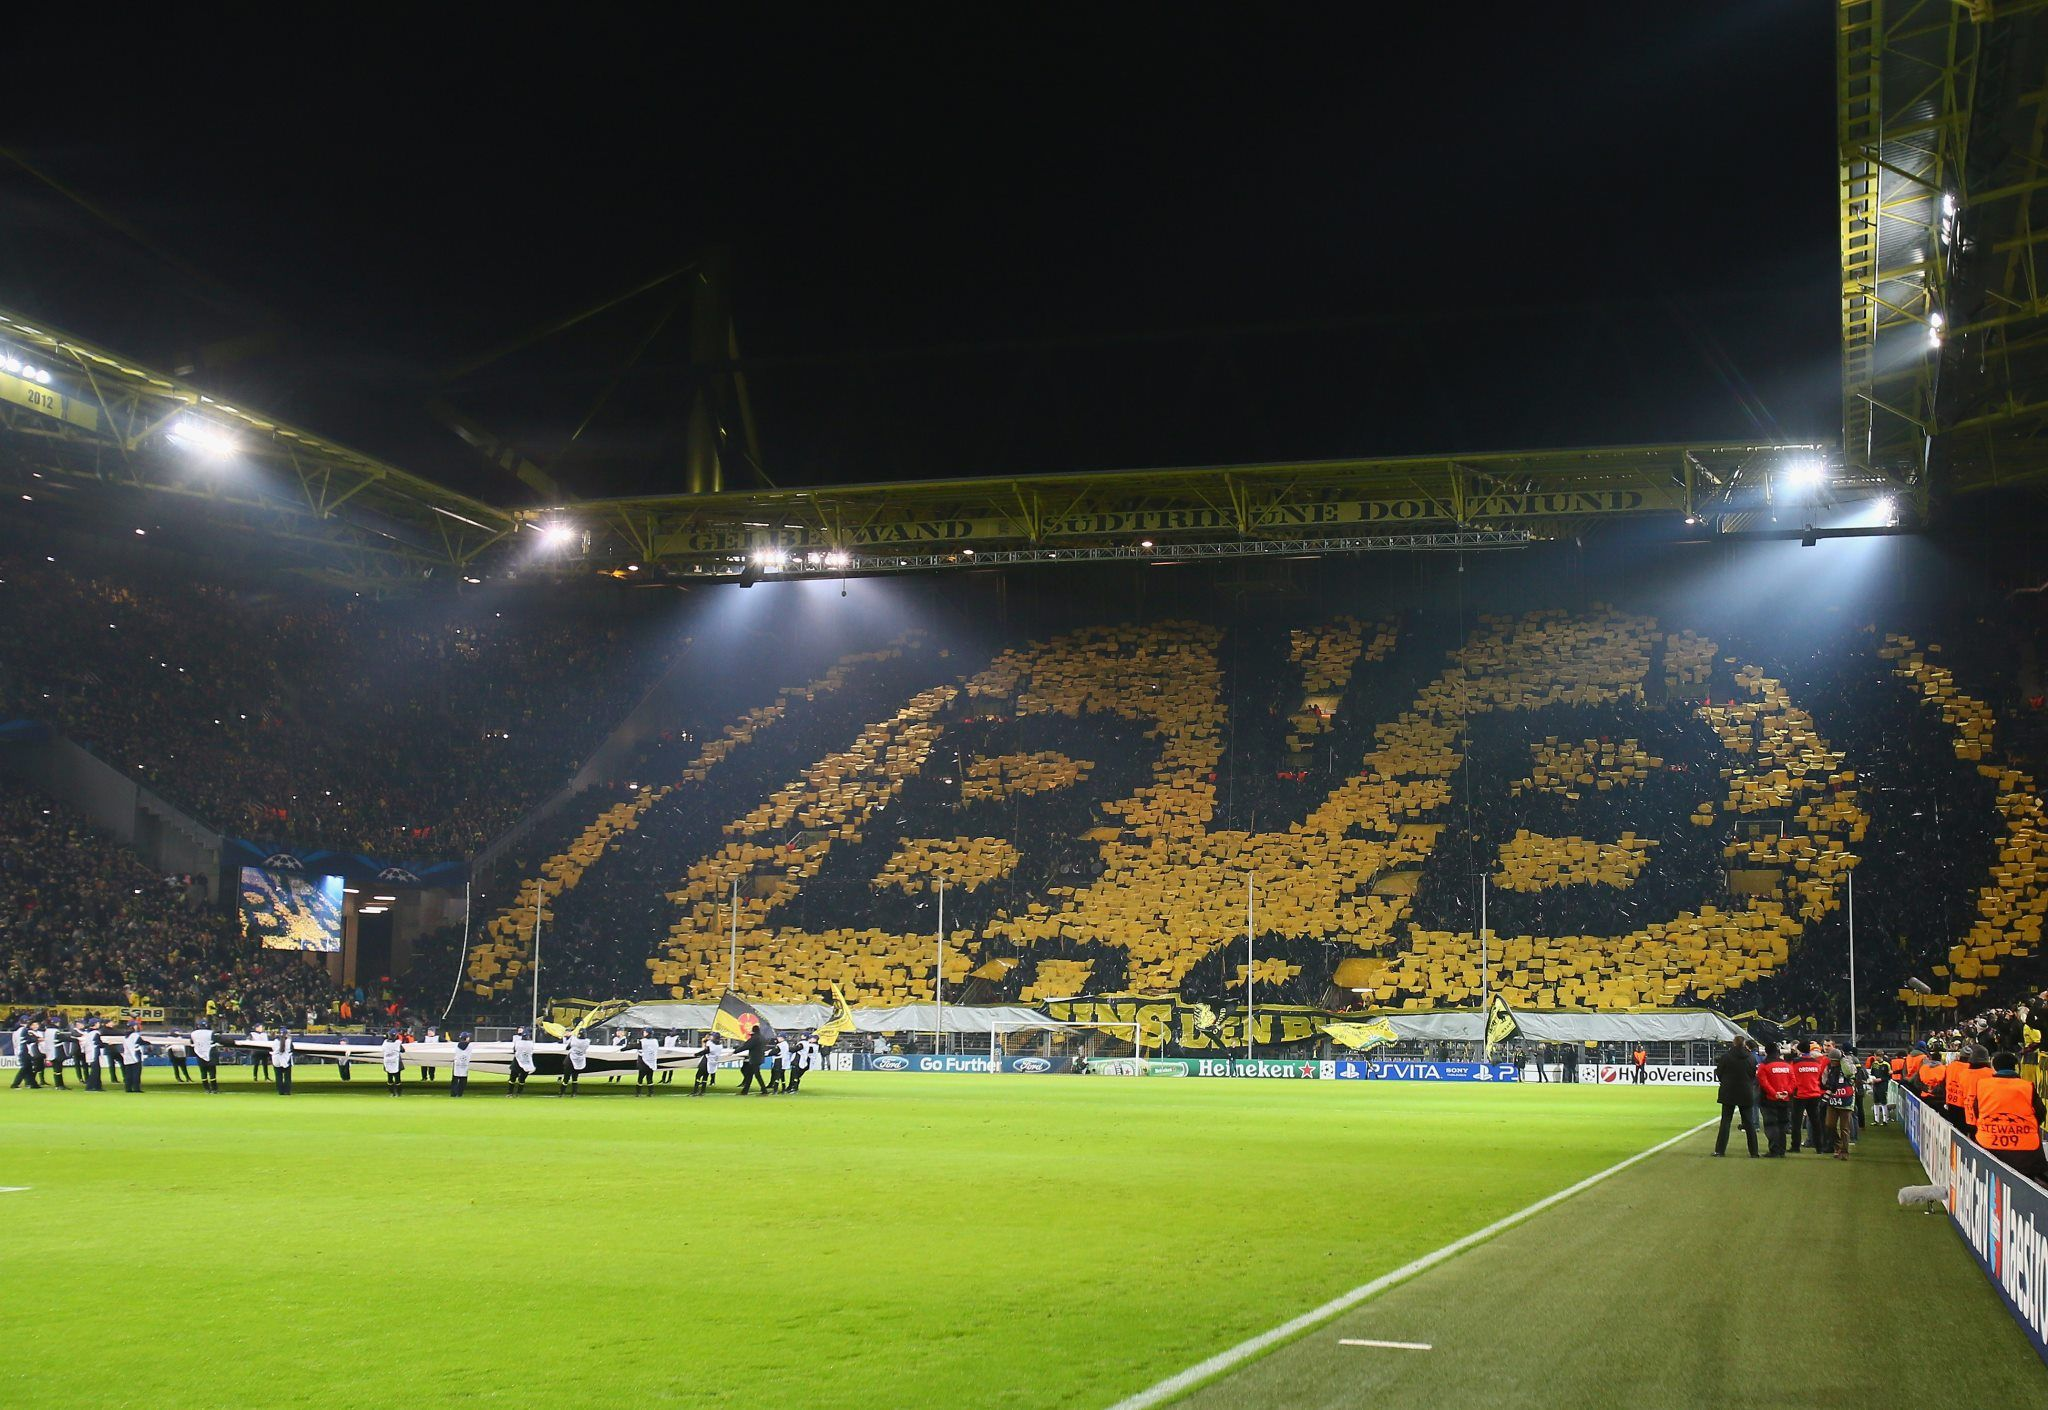 Dortmund Shopping Center Westfalenstadion Borussia Dortmund This Is Where We Play